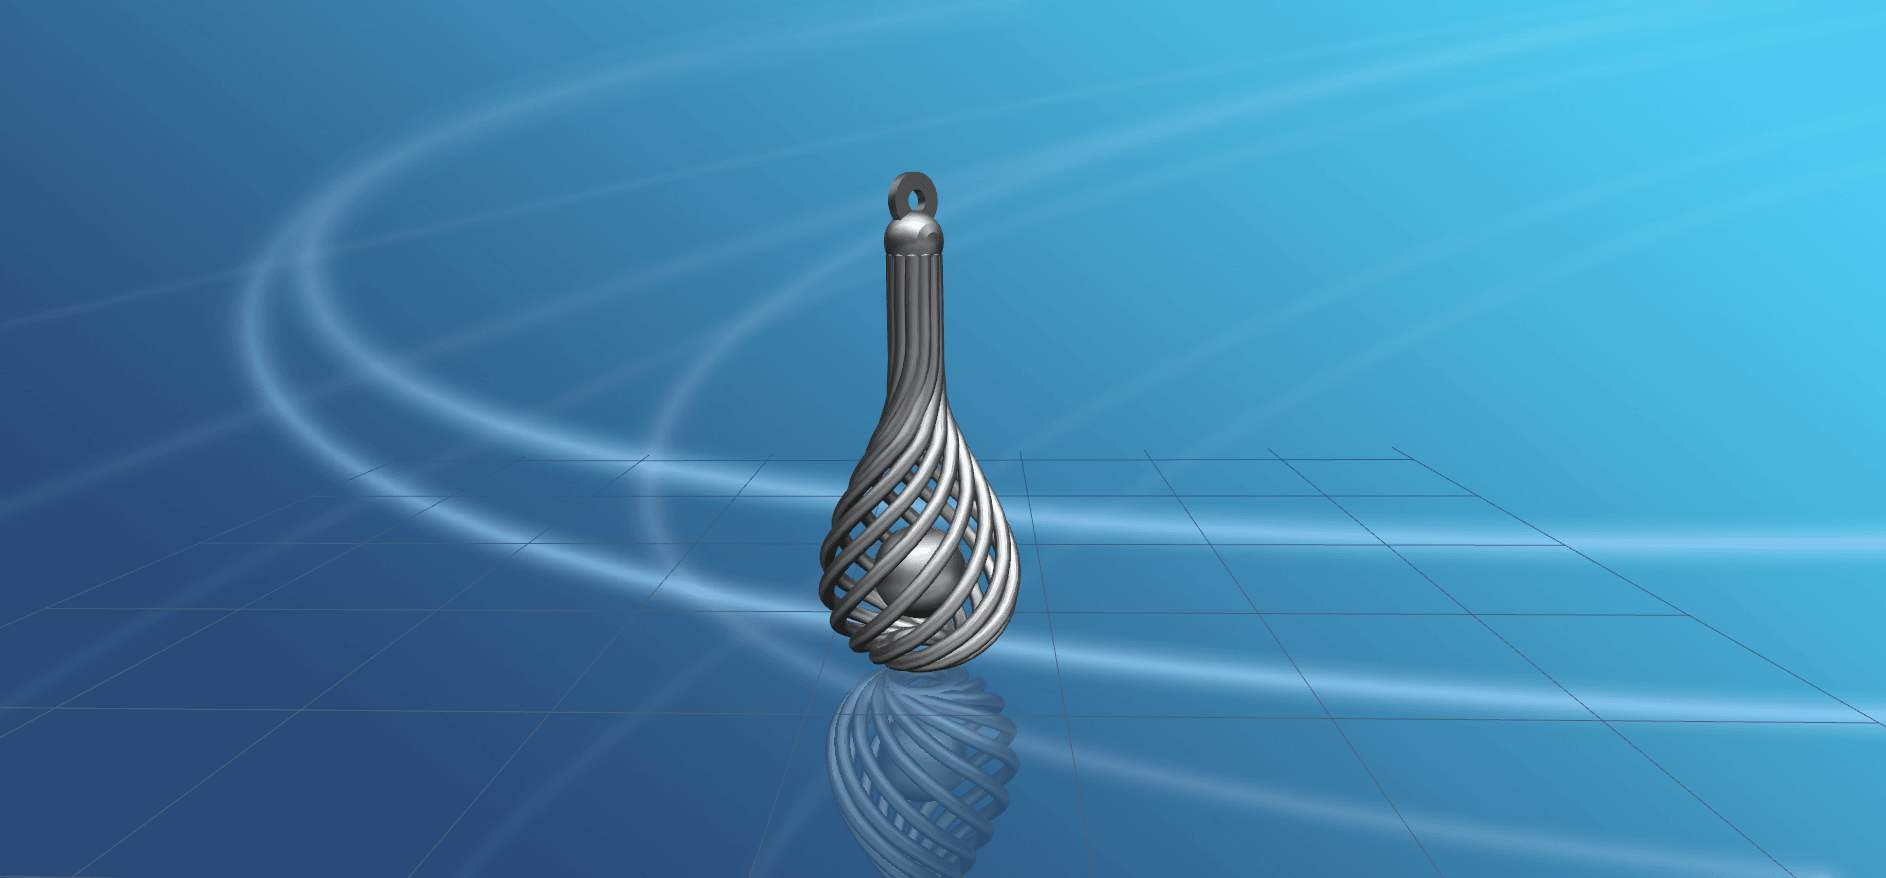 Necklace - Twisted Vase-01.png Download free STL file Necklaces - Twisted Vase • 3D print design, GeorgesNikkei